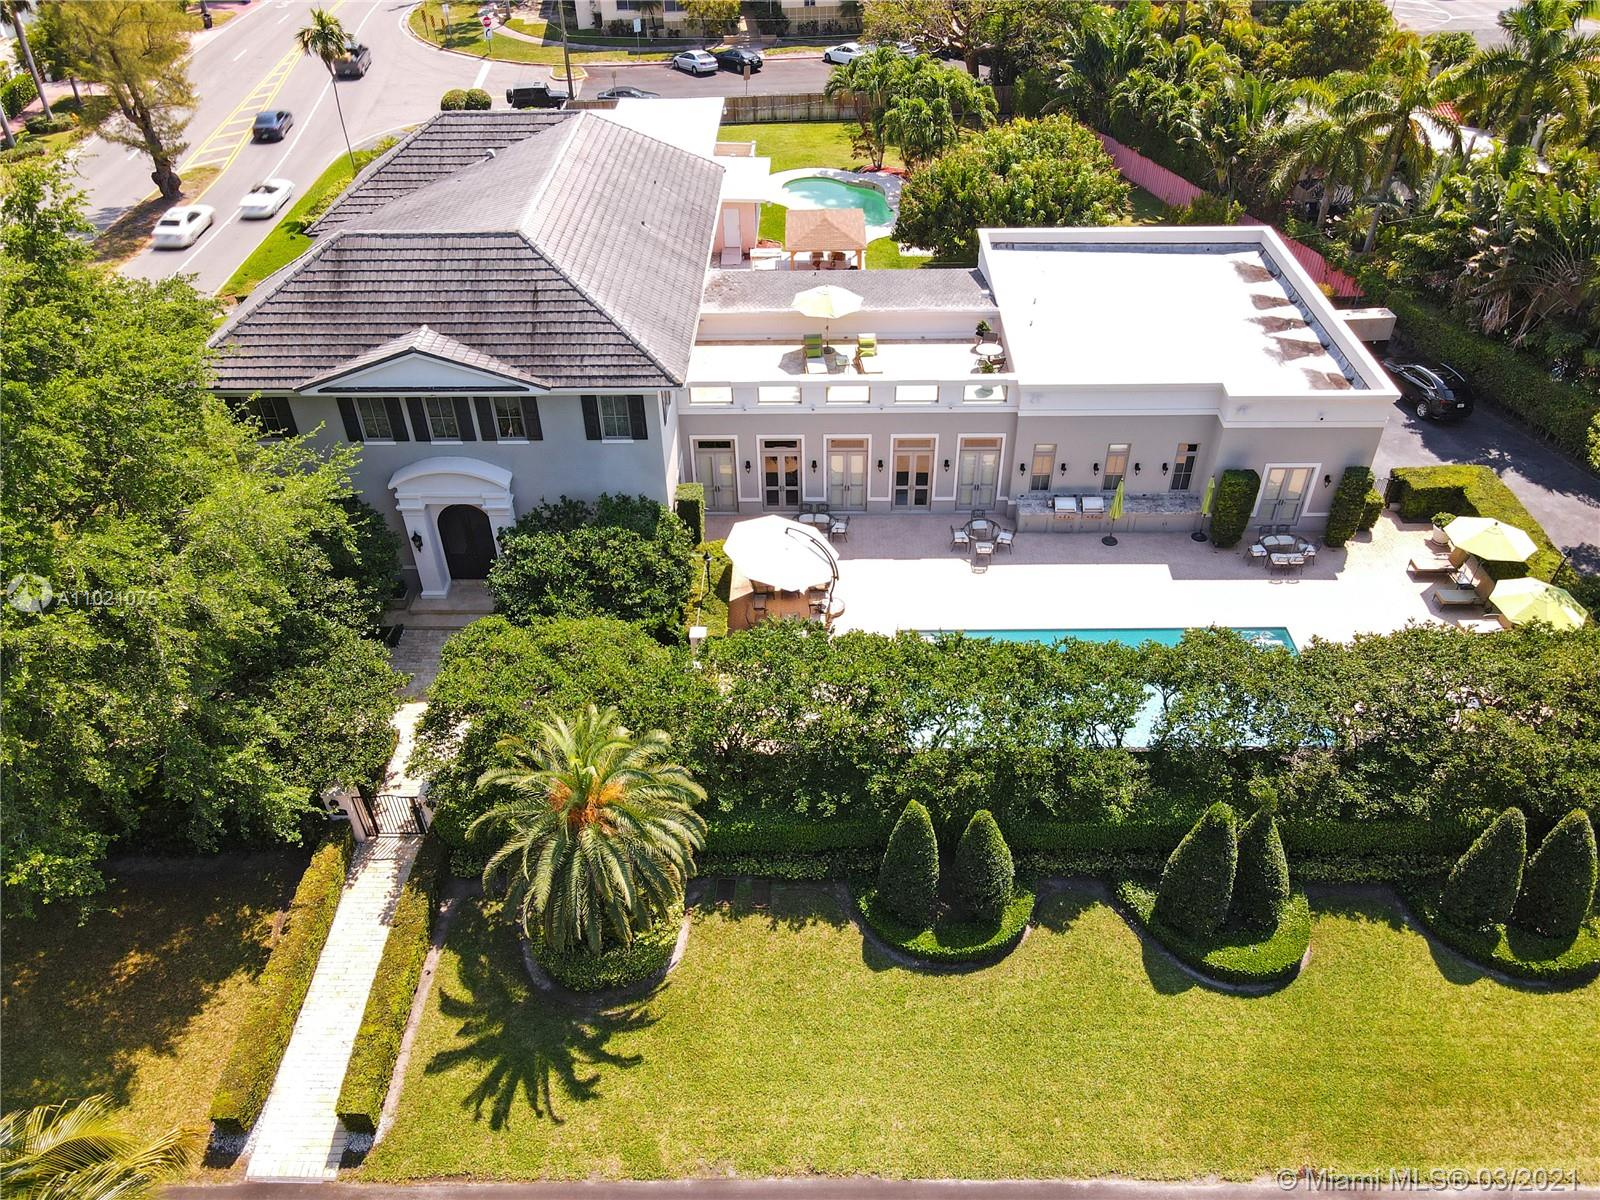 7 Bedroom 5.5 Bath elegant French neoclassical masterpiece by noted architect Jorge Hernandez. Enter through your beautiful intimate French garden on quiet 31st Street. Tall doors with transoms, 12 in. baseboards, fabulous crown moldings and features throughout. Impact windows and doors & full home generator plus elevator. Open 12 1/2 ft ceilings on main level. State-of-art kitchen within spacious family/ great room and extra-large living areas. Main suite with grand oversized walk-in closet. Private rooftop deck perfect for entertaining. Heated oversized 40x18' pool, 2 outdoor barbeques & grill. House is elevated 3 ft above ground level. Lighting fixtures are not included. Truly one-of-a kind! A must see!